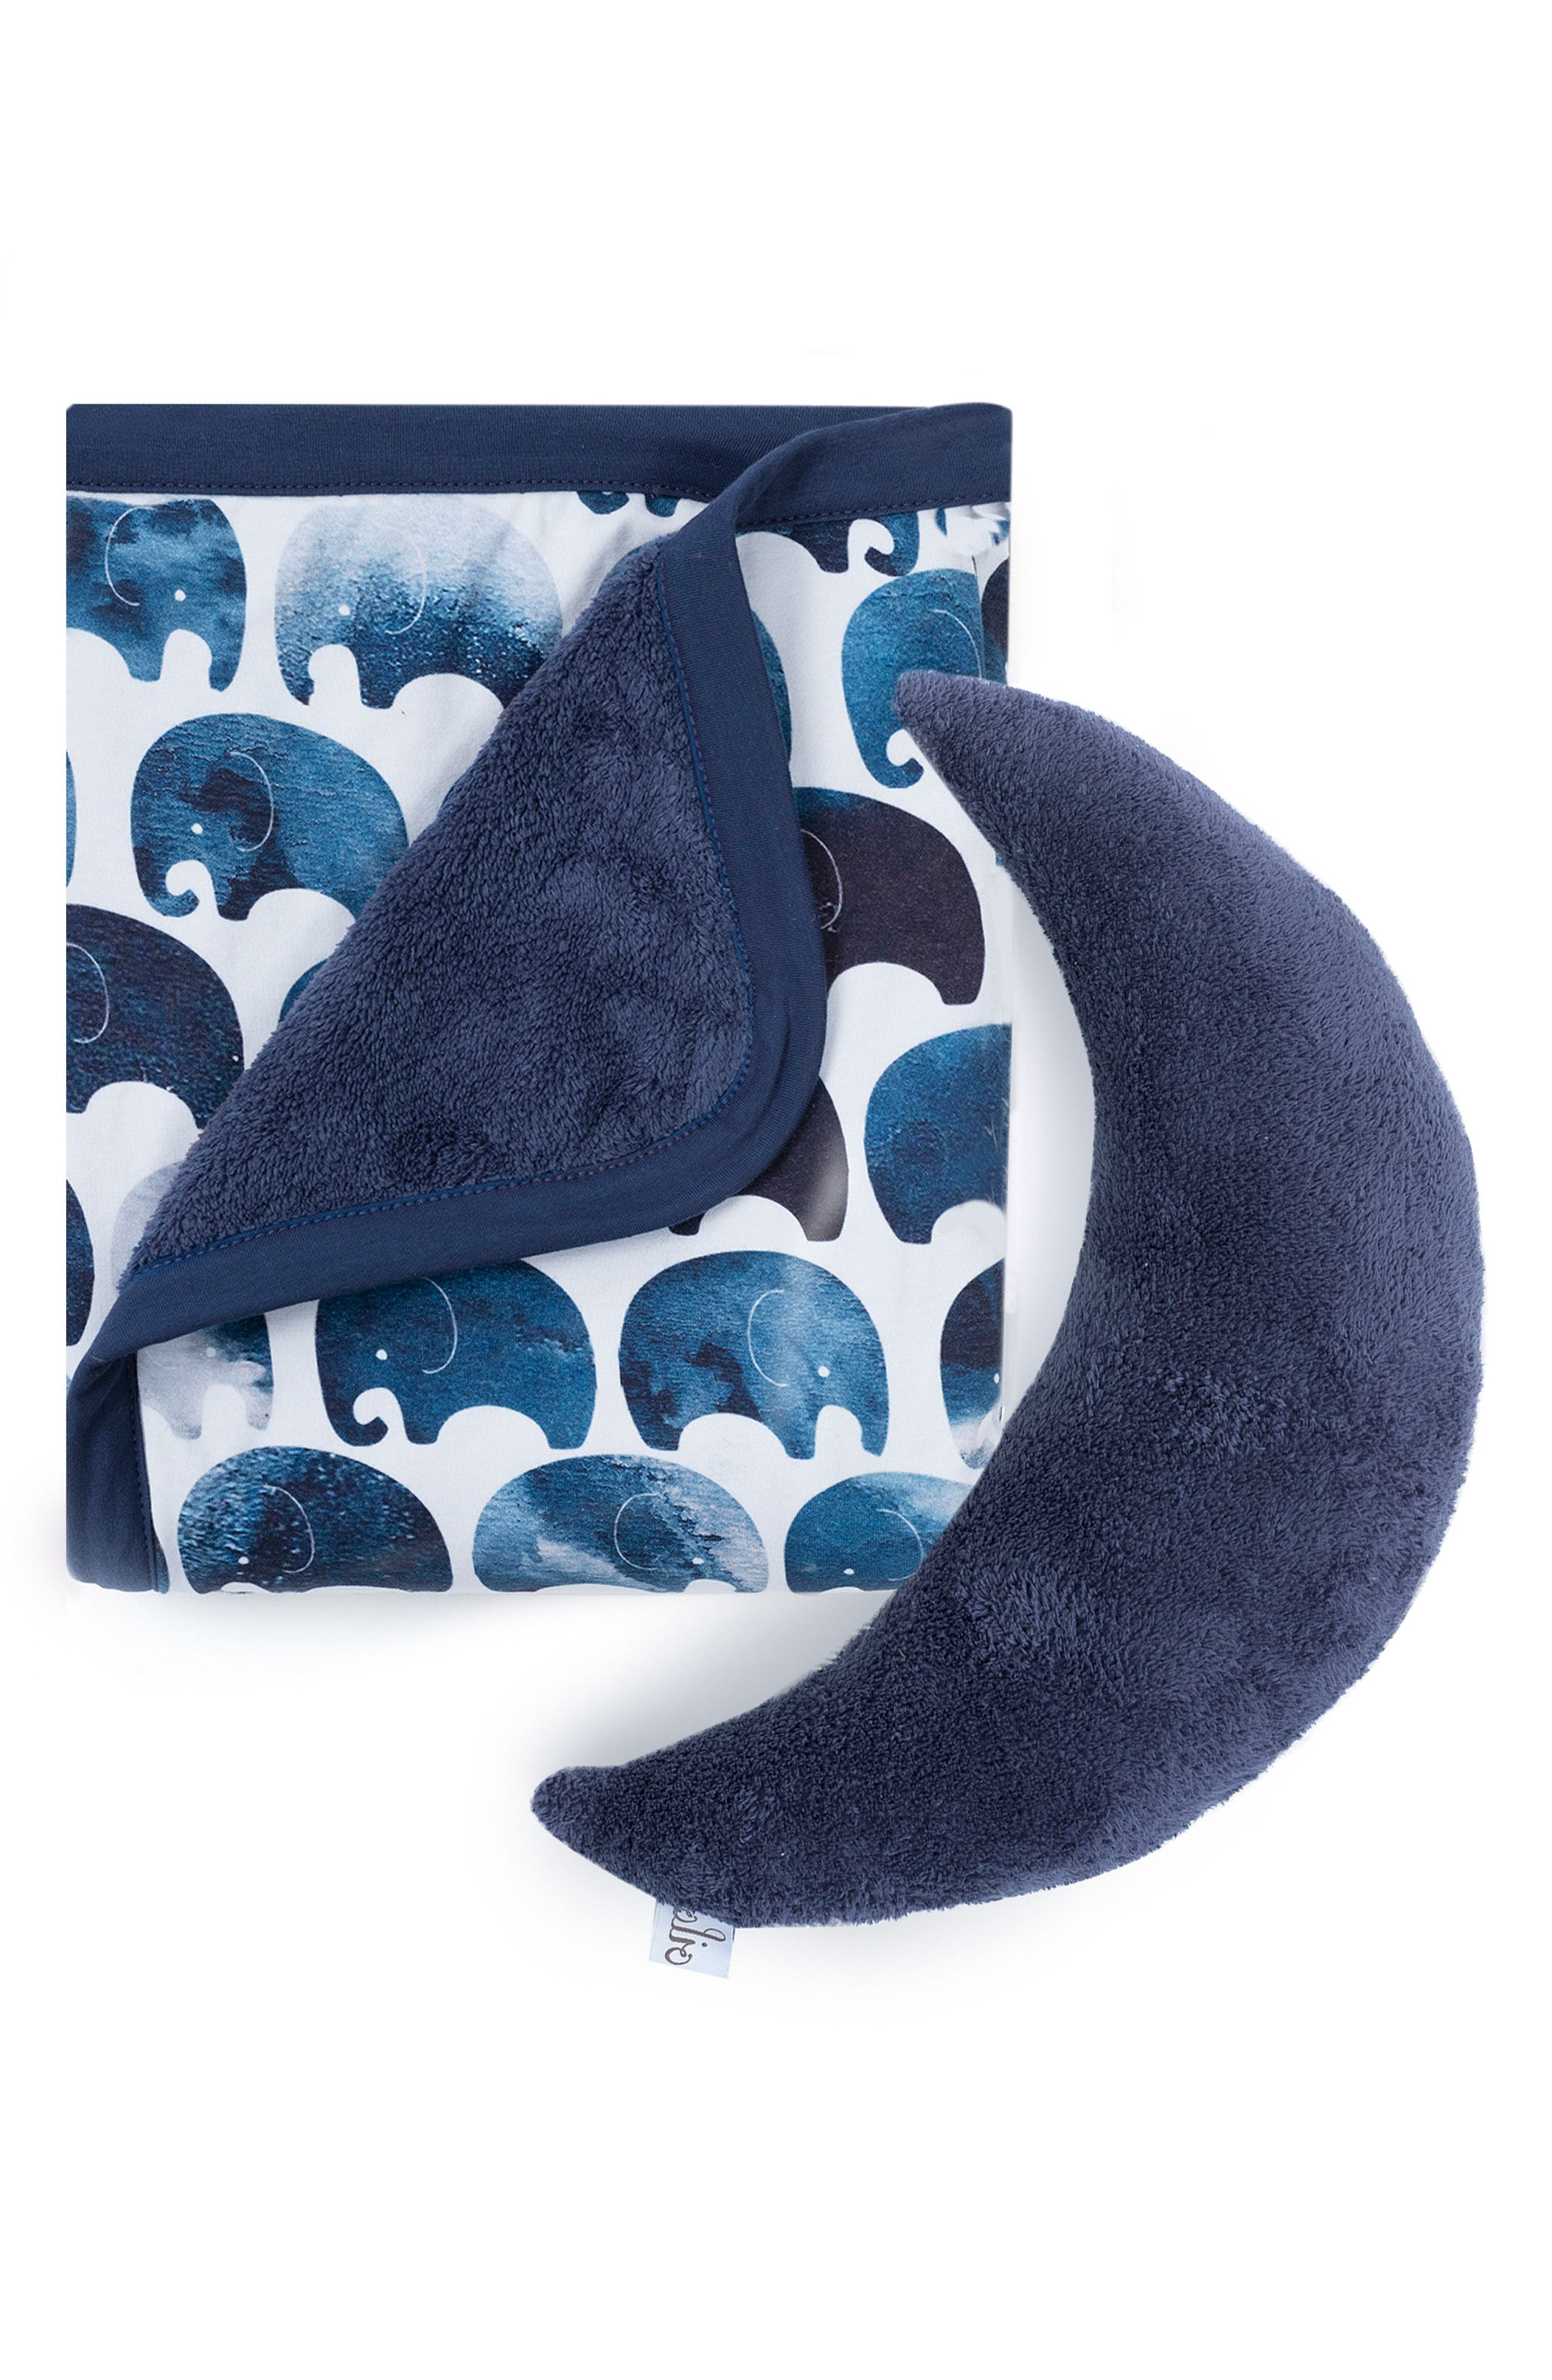 Moon Pillow and Elephant Blanket Set